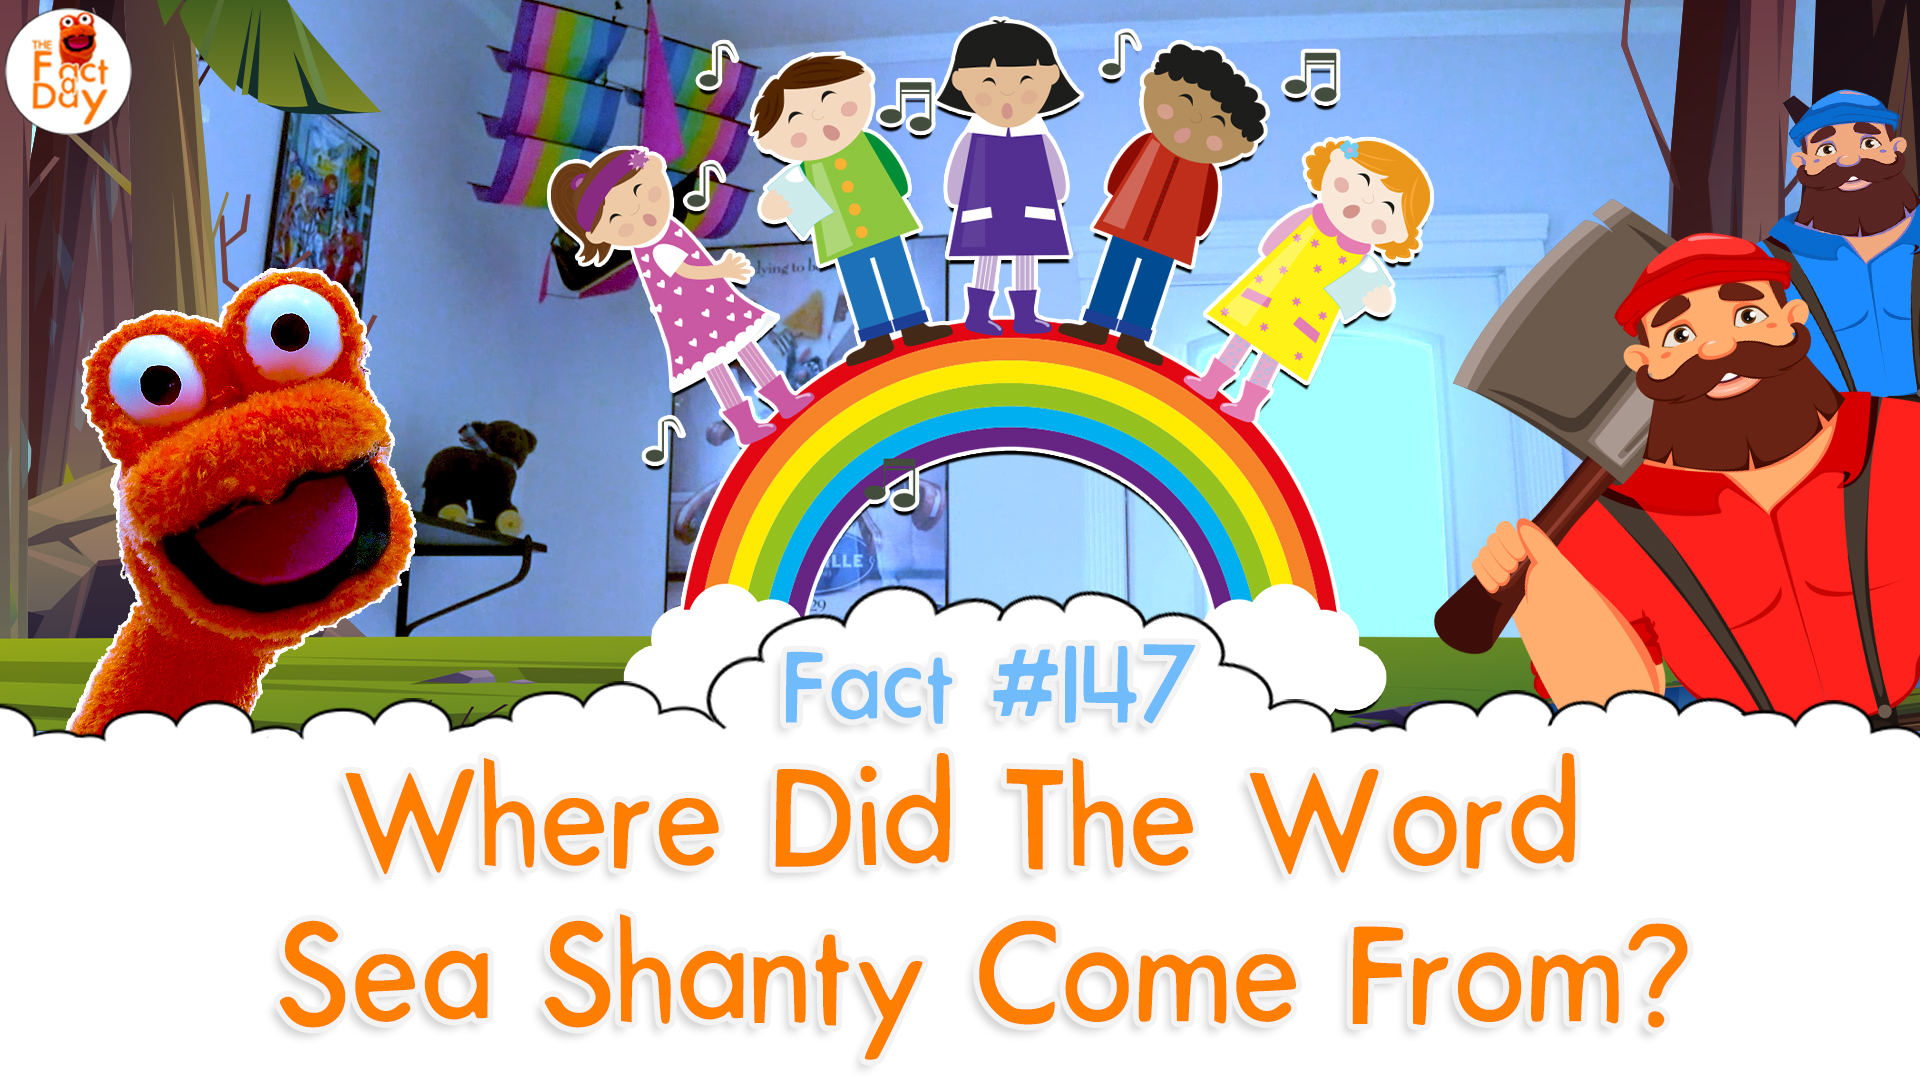 The Fact a Day - Where Did The Word Sea Shanty Come From